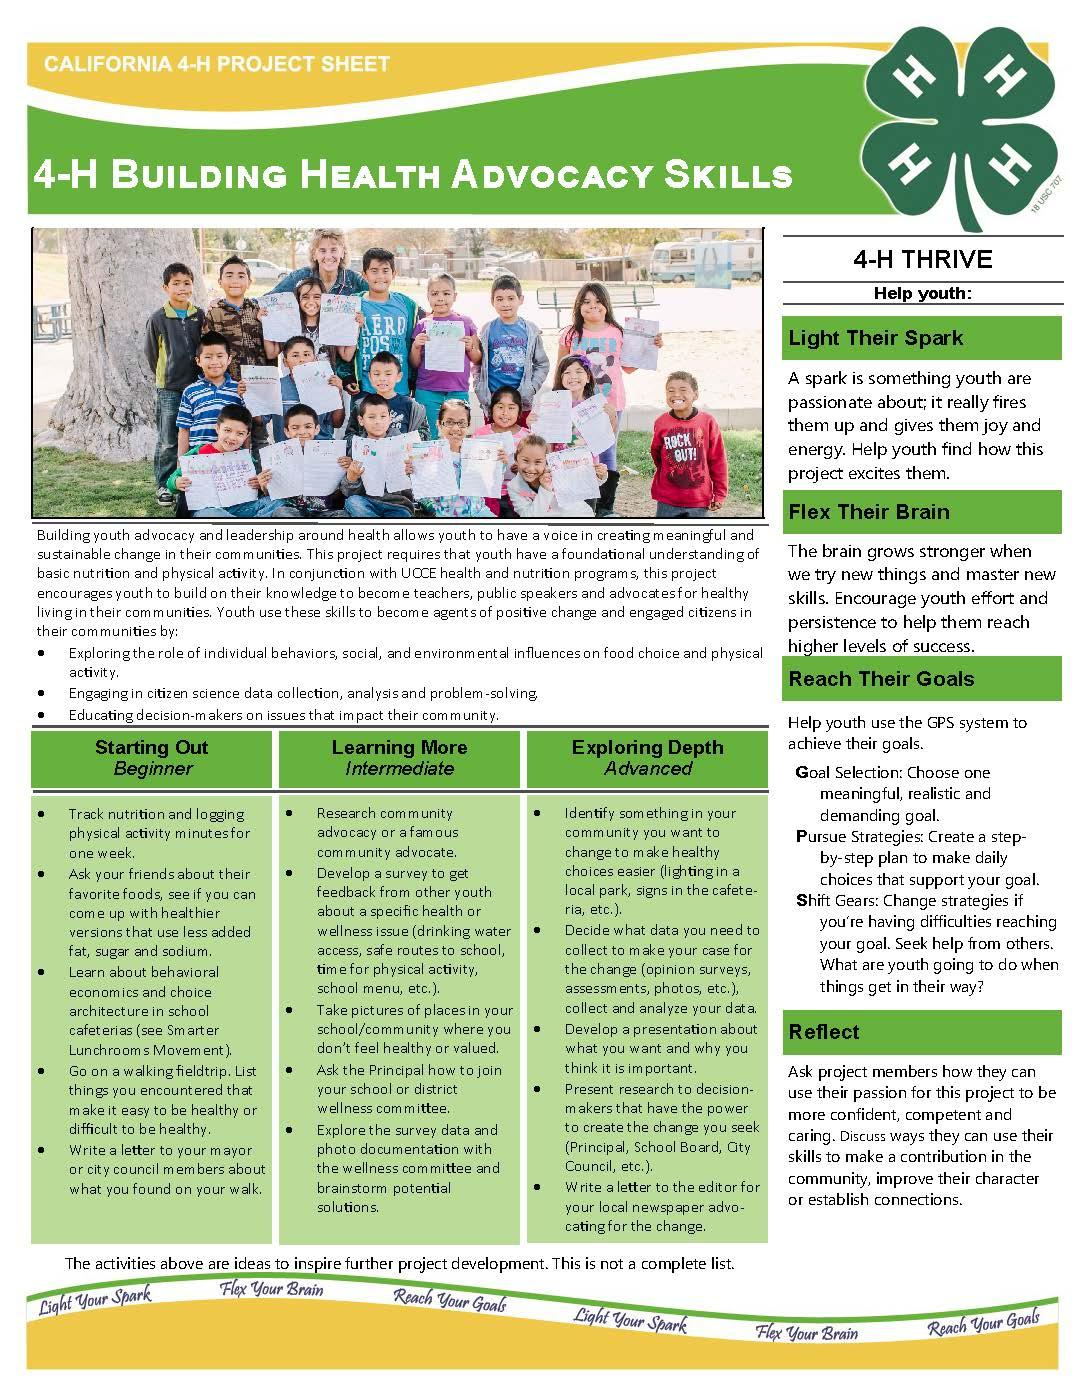 4-H Building Health Advocacy Skills